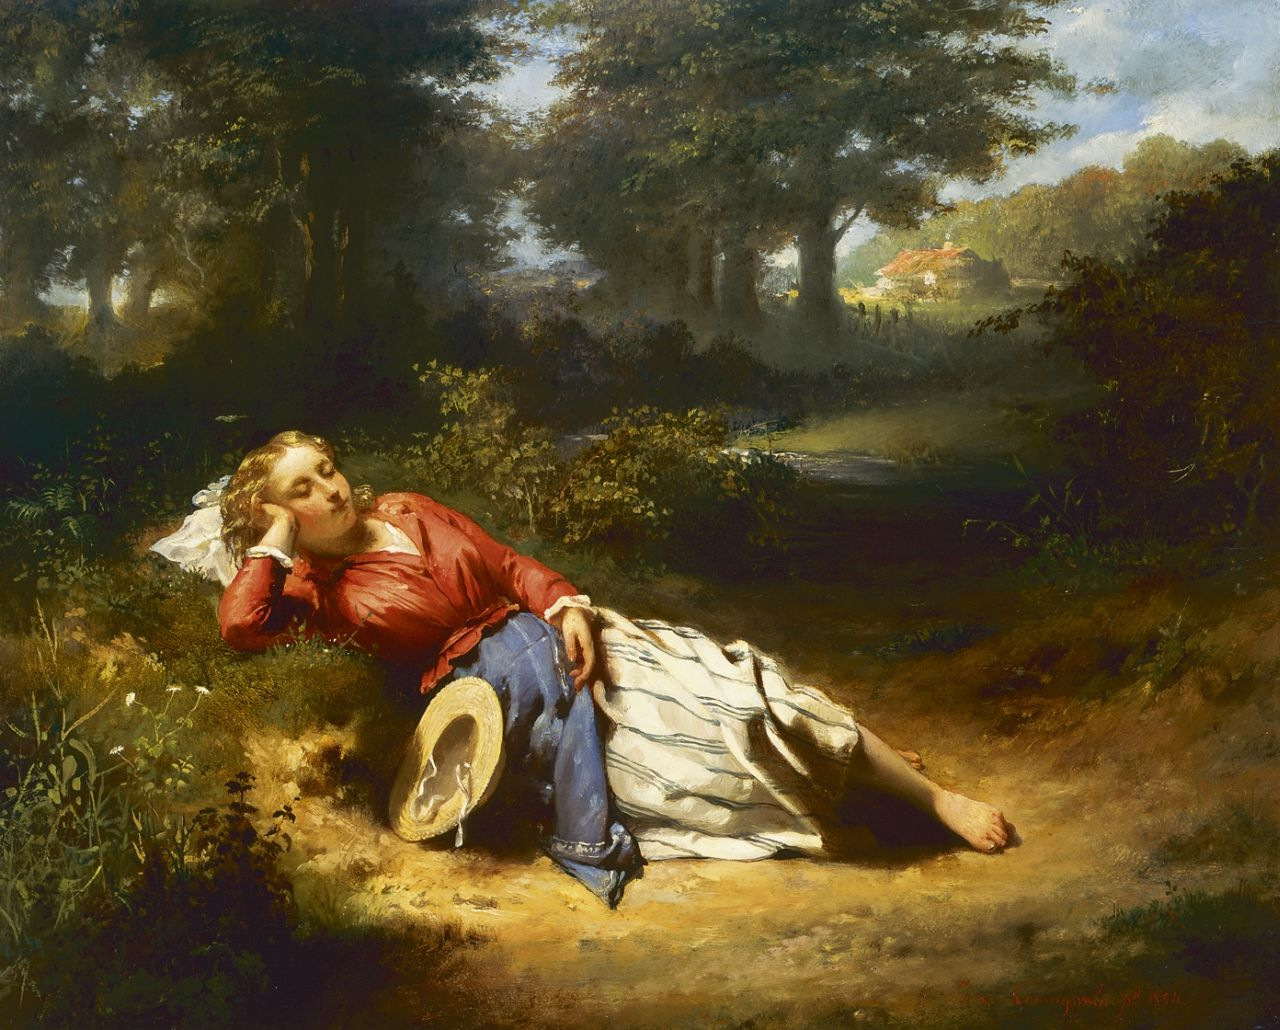 Jacobus van Koningsveld | A sleeping beauty, oil on panel, 34.5 x 43.5 cm, signed l.r. and dated 1854